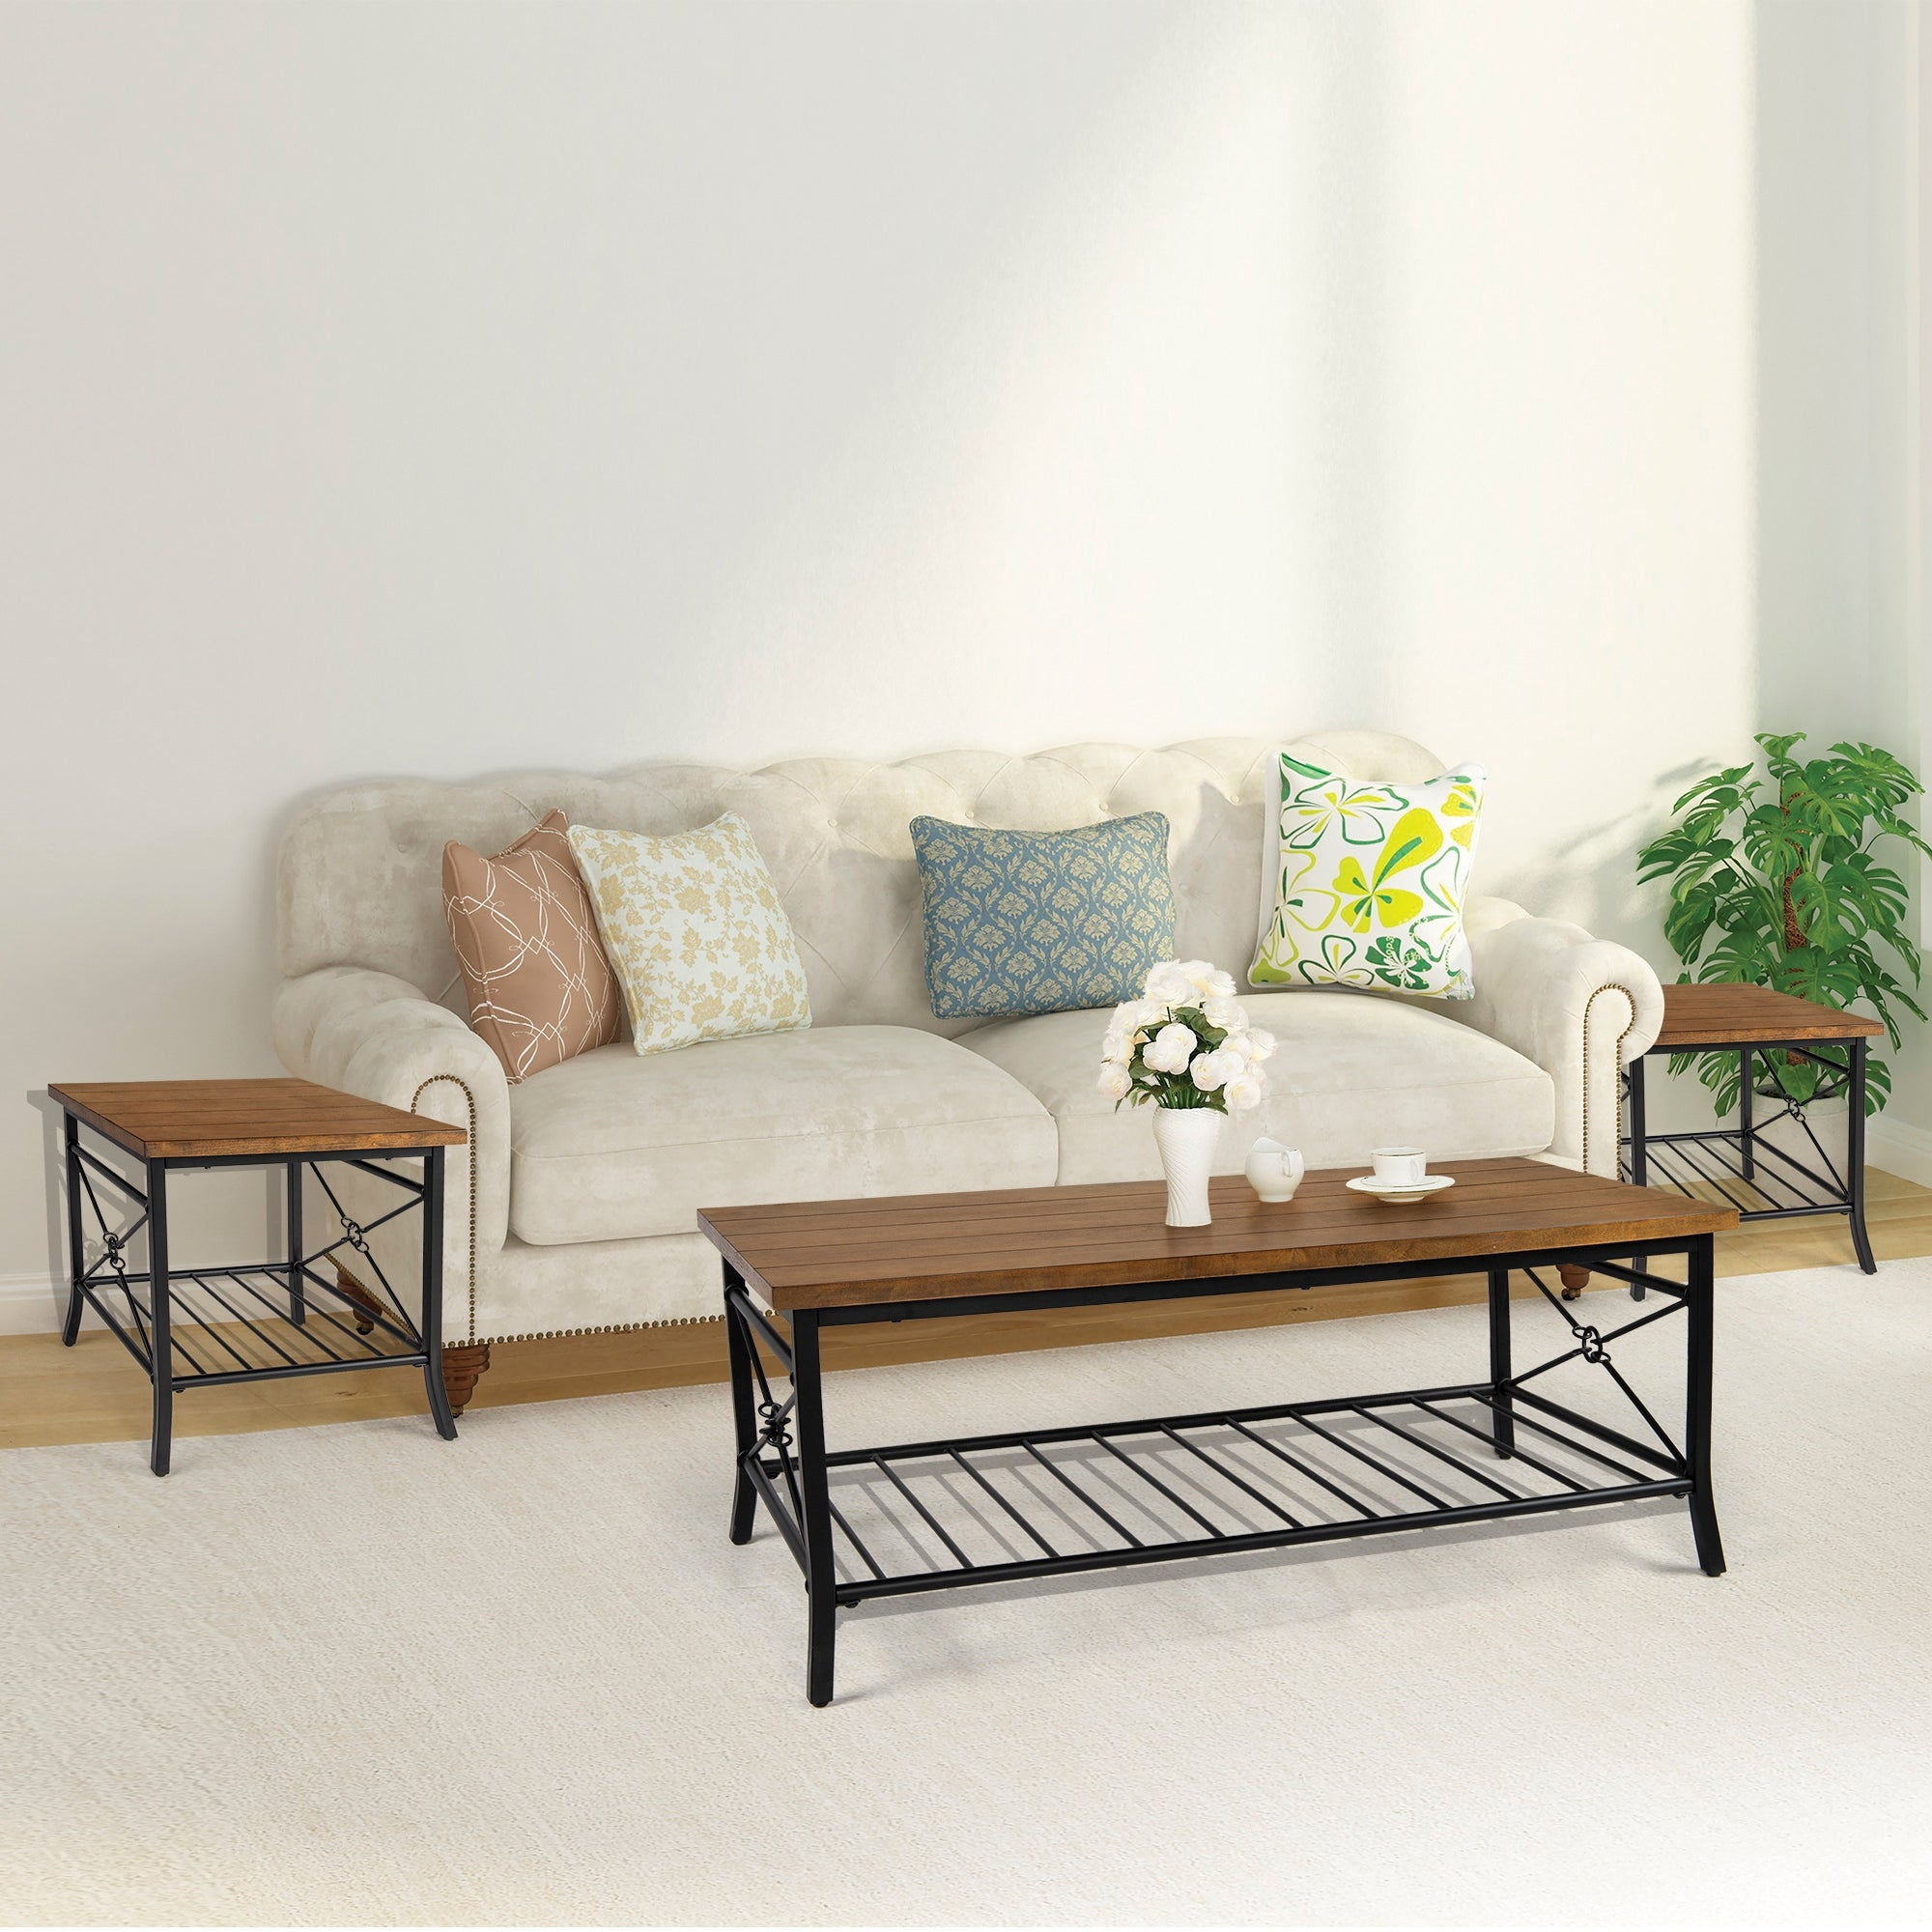 Shop Modern Farmhouse Wood Coffee Table Sets With Metal Storage Shelf 1 Coffee Table 2 Side Tables 48x24x18 Overstock 31292871